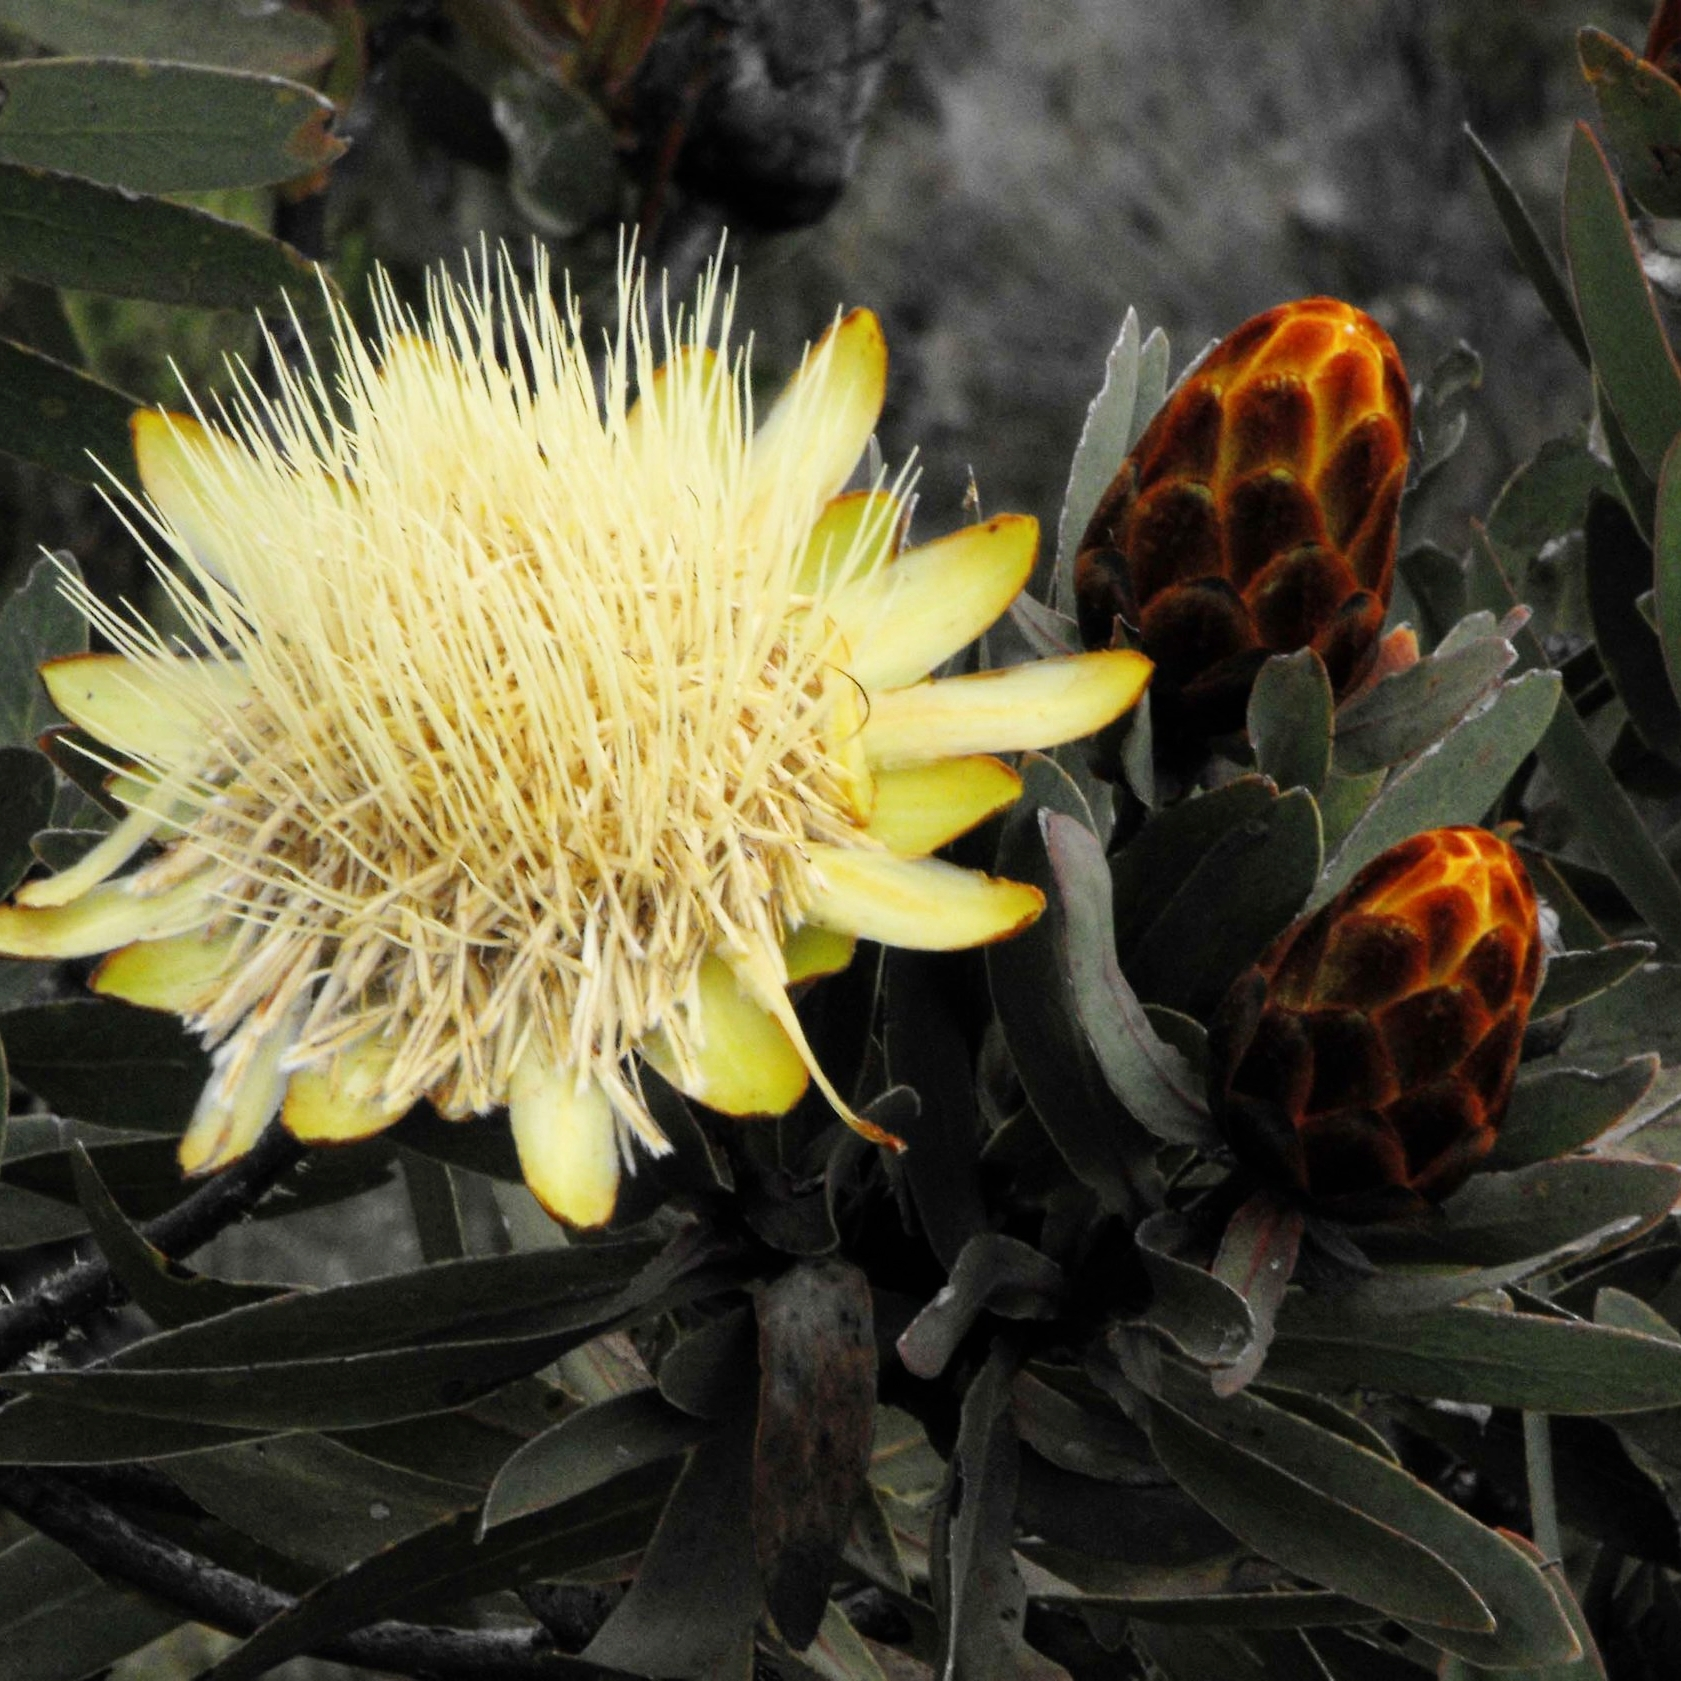 PROTEAS - The floral emblem of South Africa, these everlasting flowers are found in the Heath zone of Kilimanjaro. It's rare to see them flower. In fact, it's not a unitary flower, it's actually a collection of flowers that are densely packed into a bulb that opens up at a certain stage of its maturity. At full maturity the flowers dry and open up appearing to have been burnt by a bush fire.